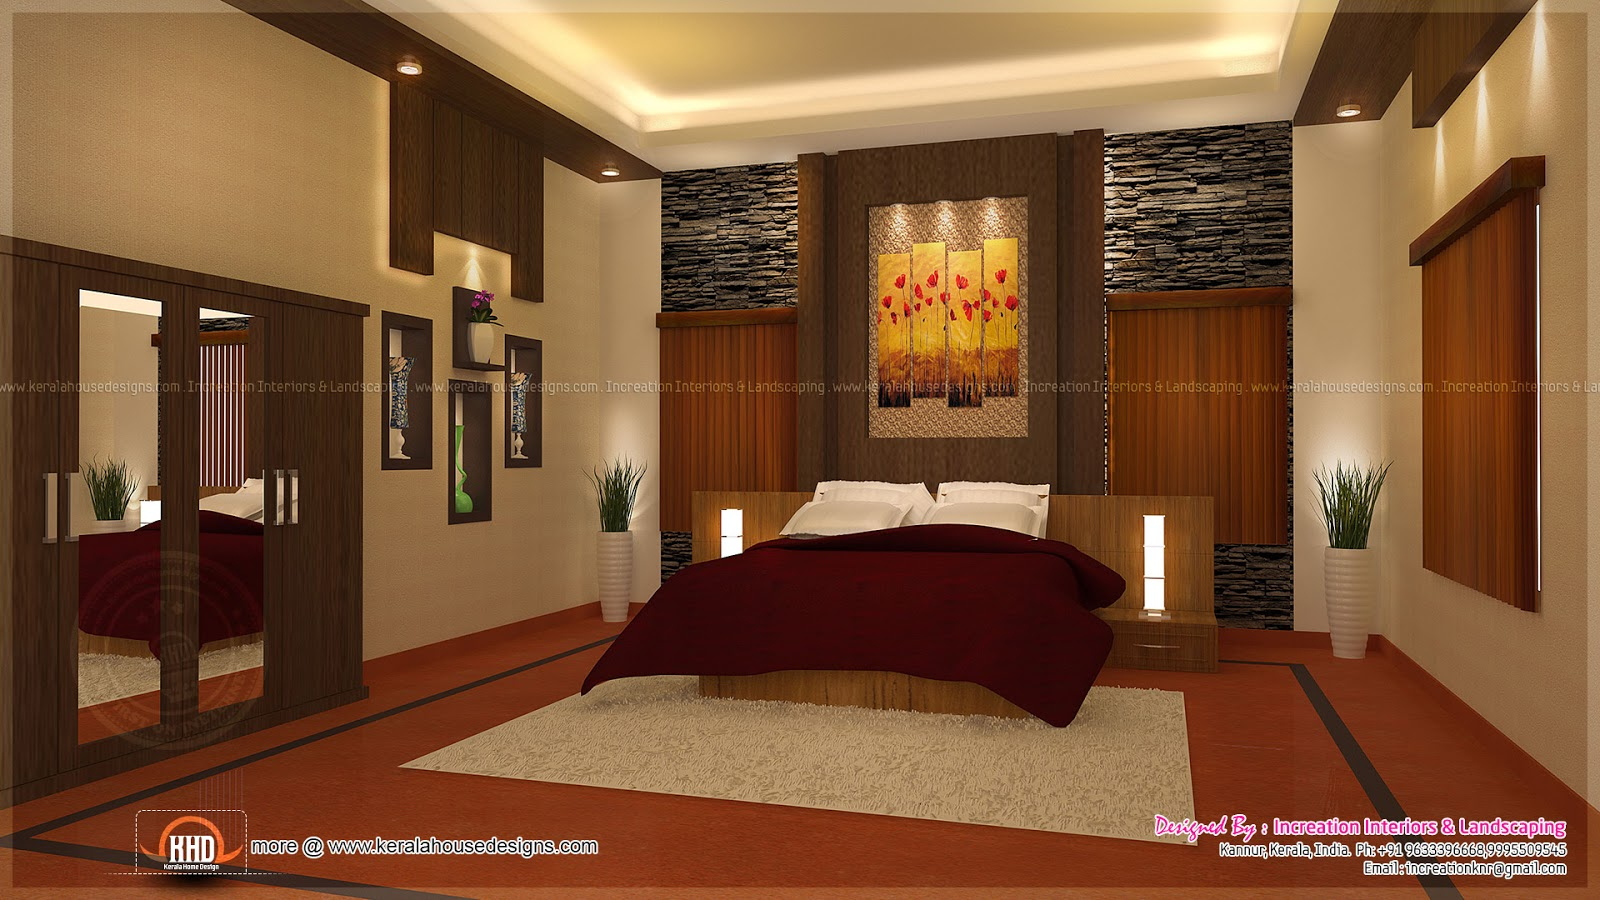 House interior ideas in 3d rendering kerala home design for House design interior decorating